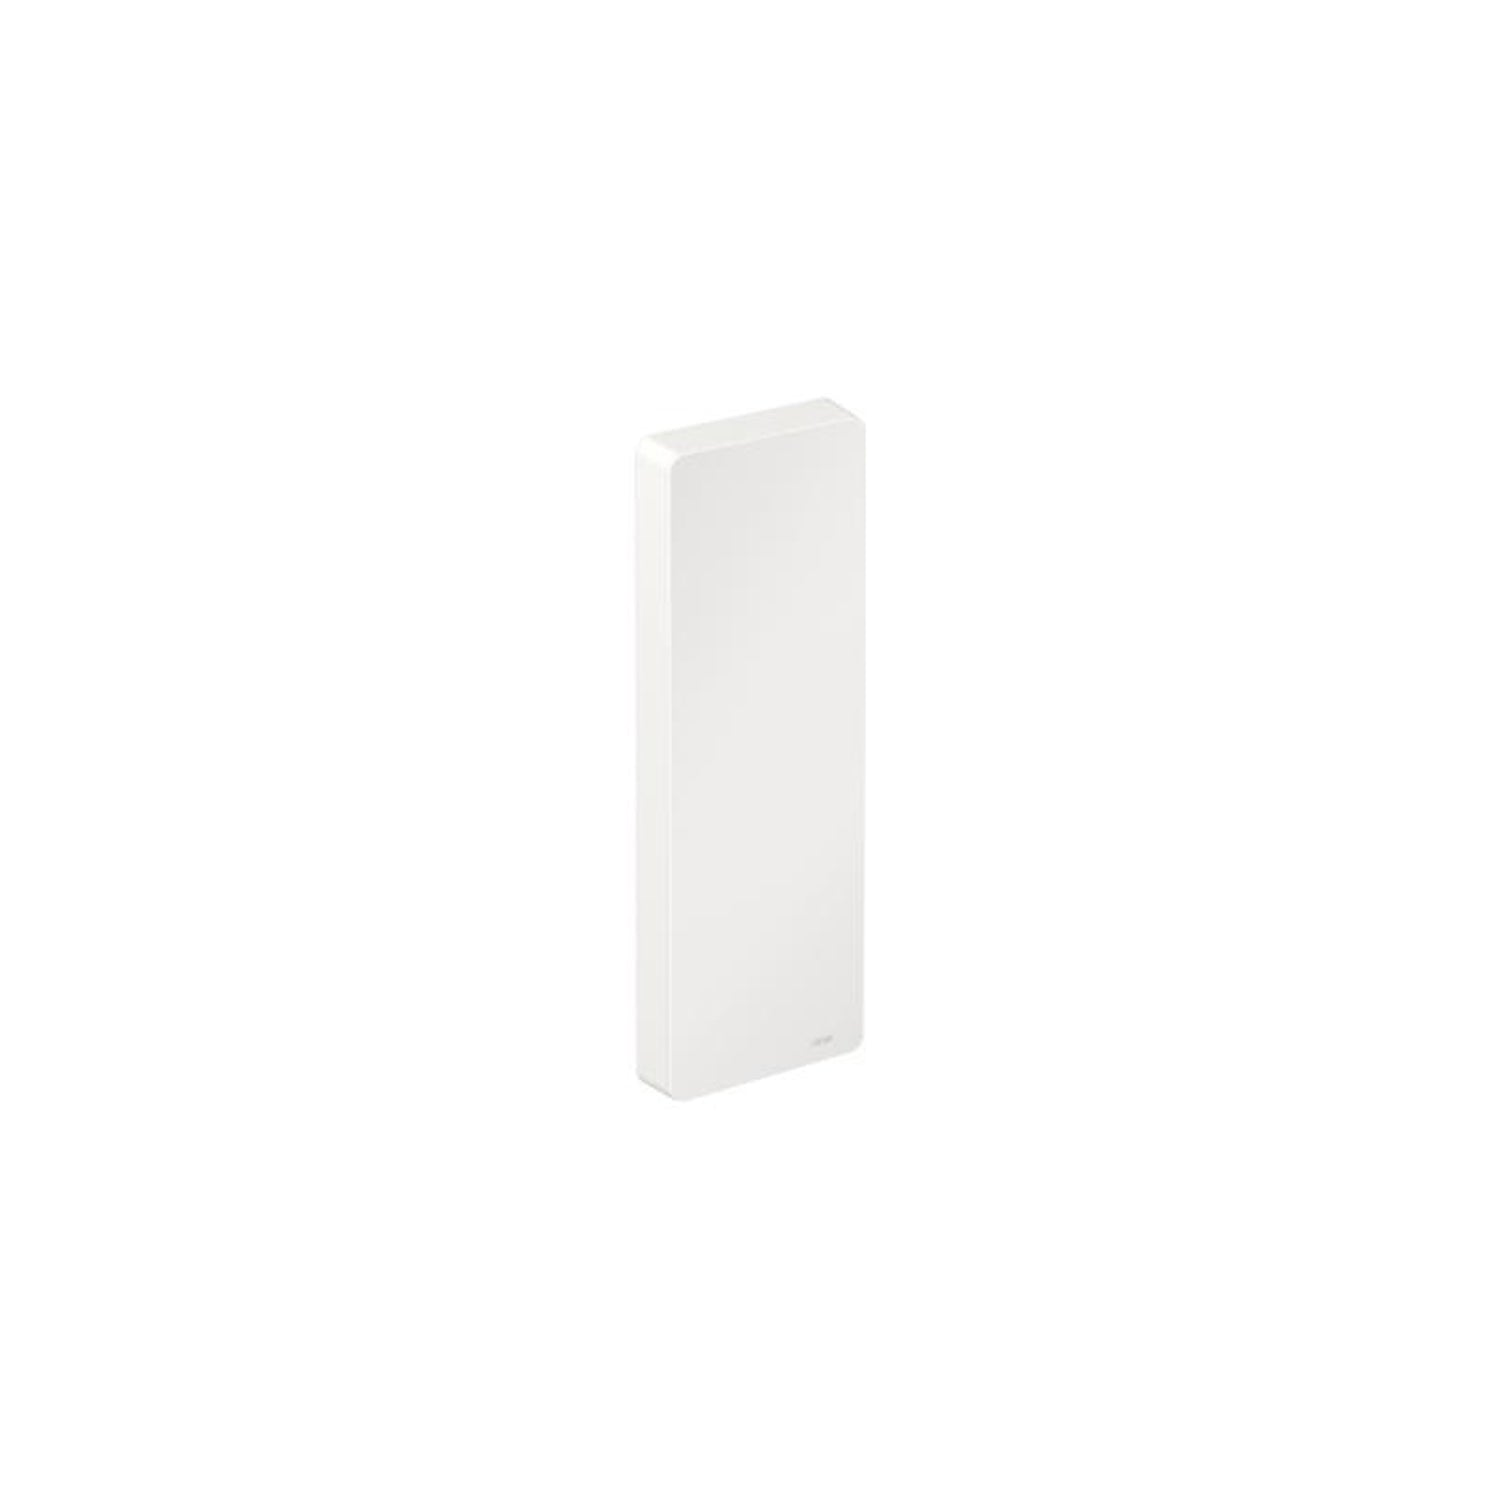 Freestyle Removable Hinged Grab Rail Cover with a white finish on a white background